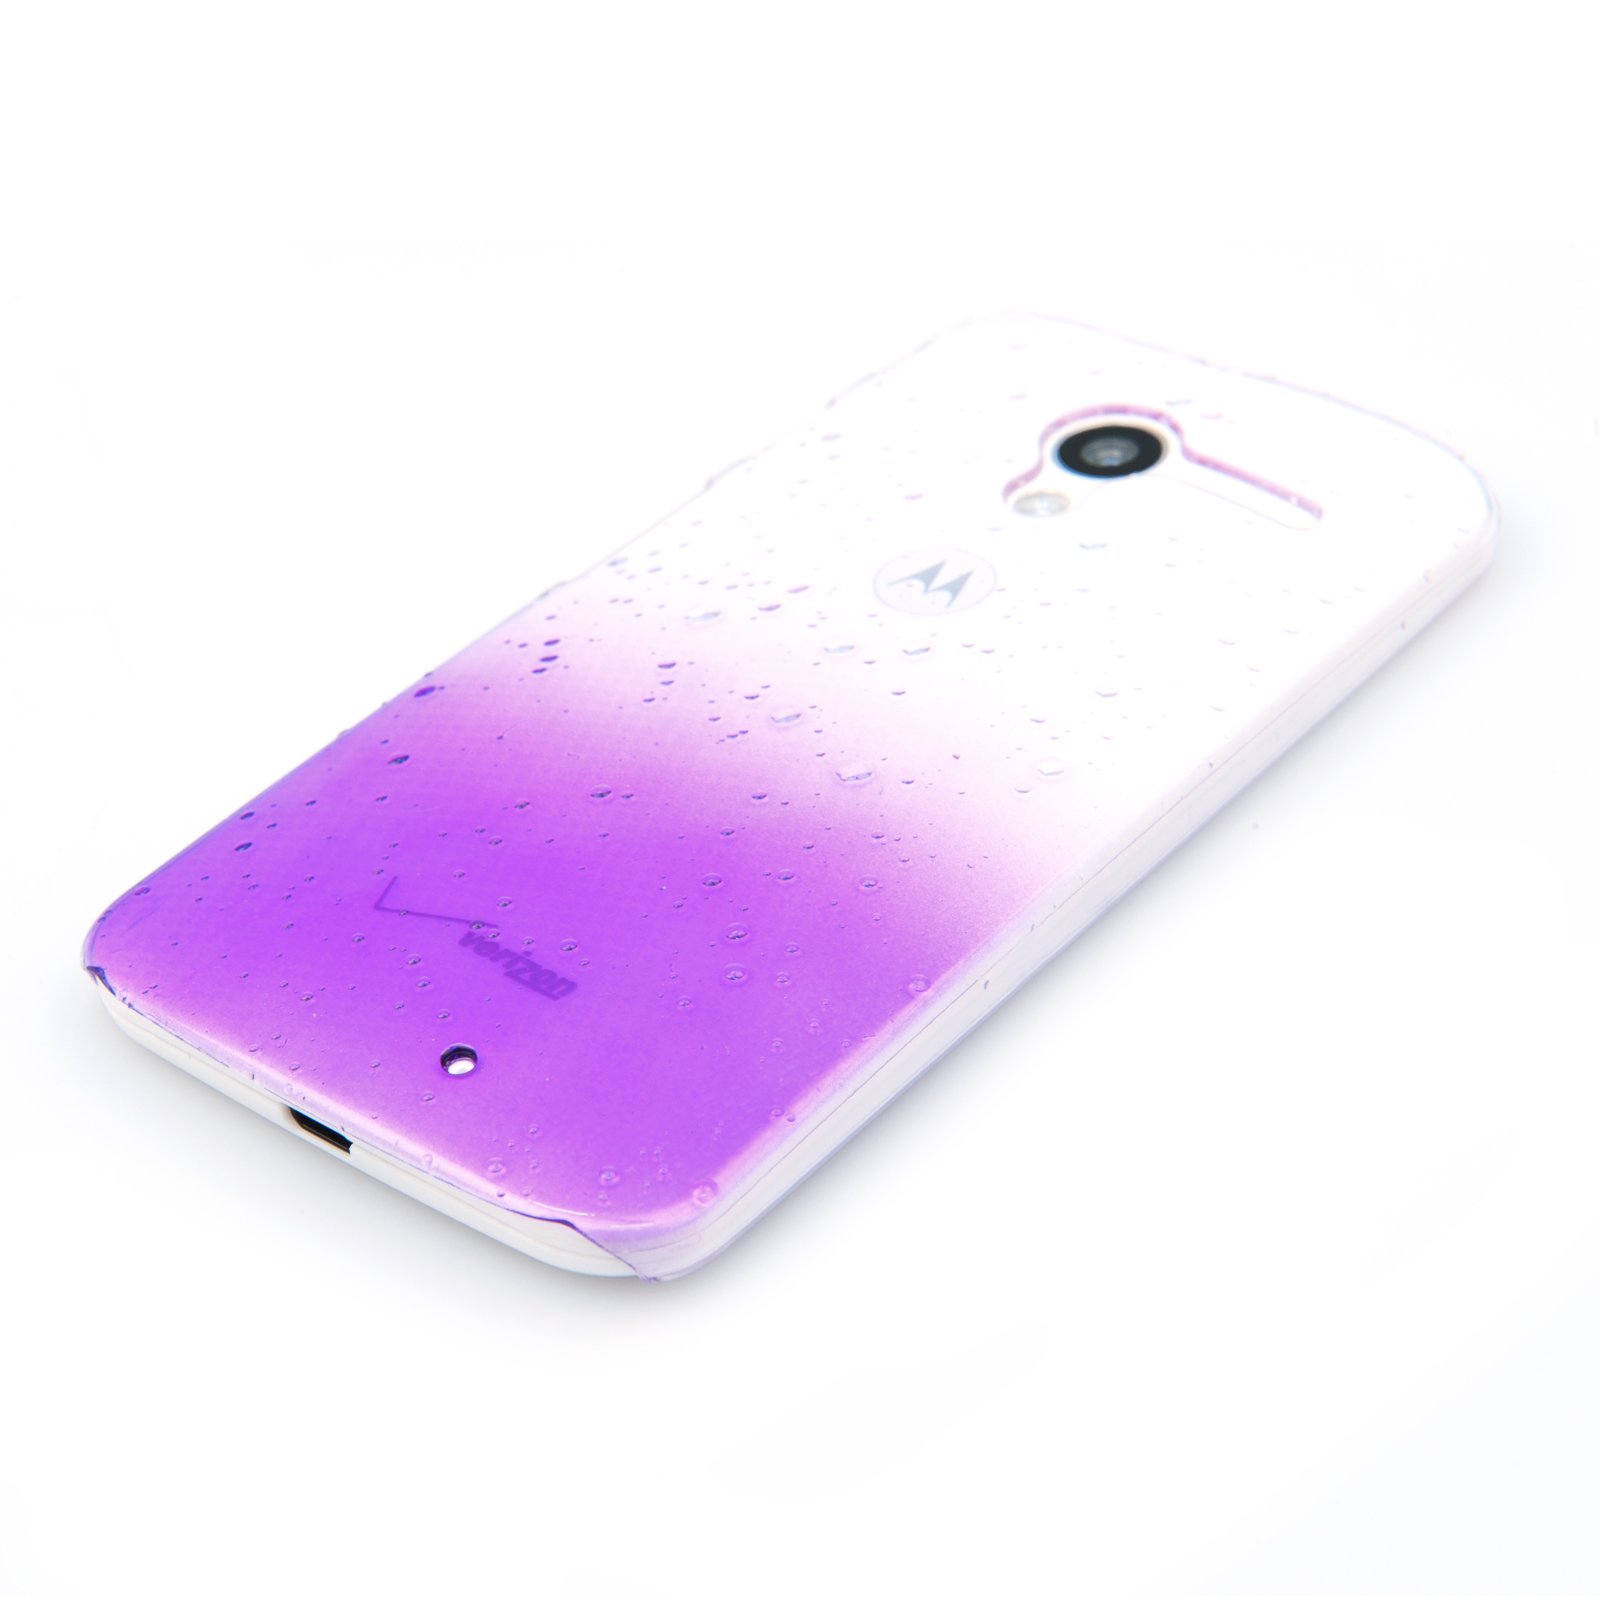 YouSave Accessories Motorola Moto X Raindrop Hard Case - Purple-Clear